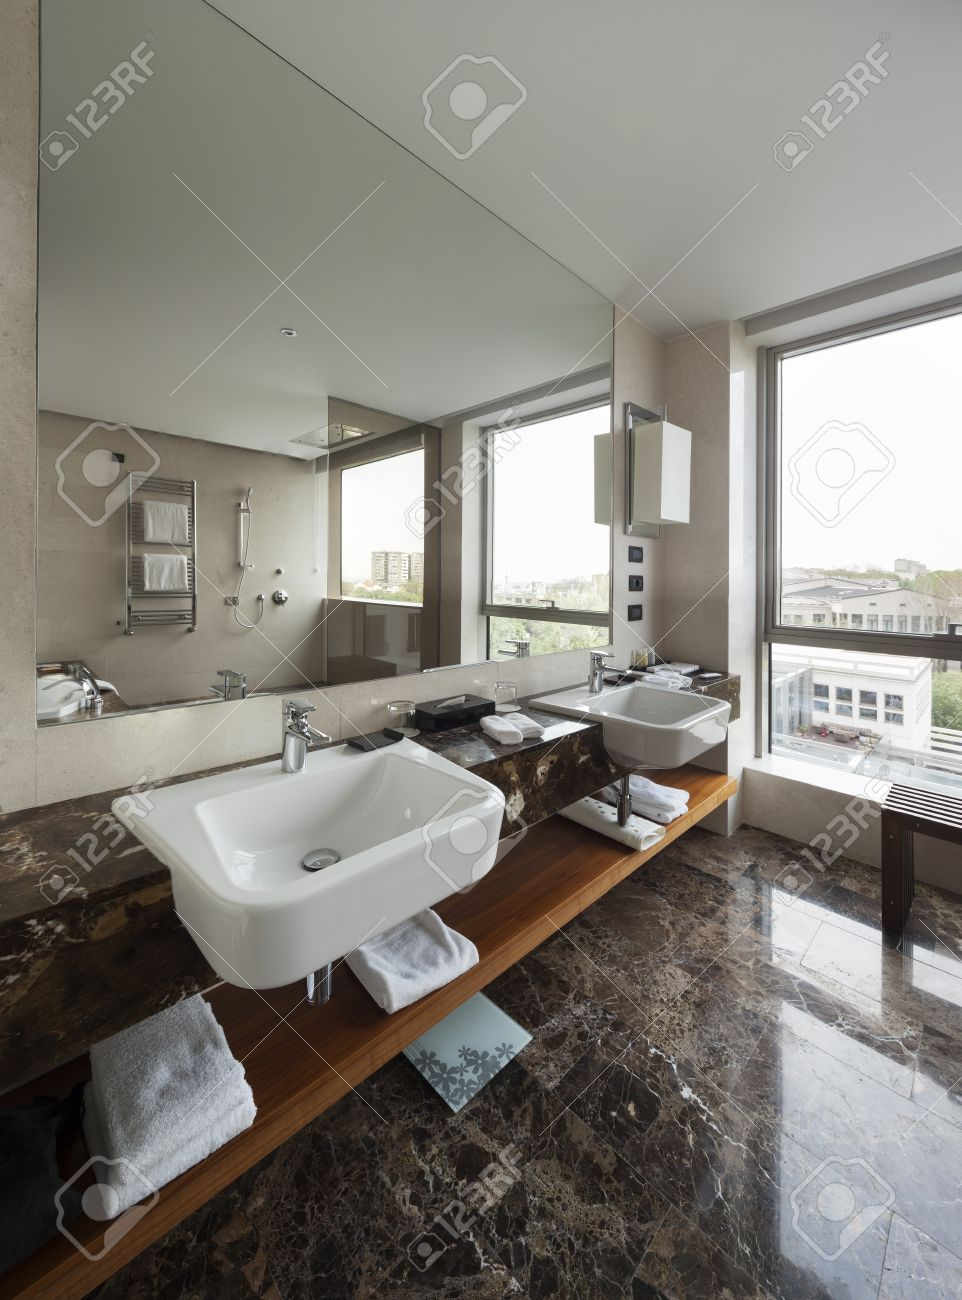 large mirrors for bathroom. Modern Bathroom Interior With Double Sink And Large Mirrors, Bath Tub, Tiles, View Mirrors For